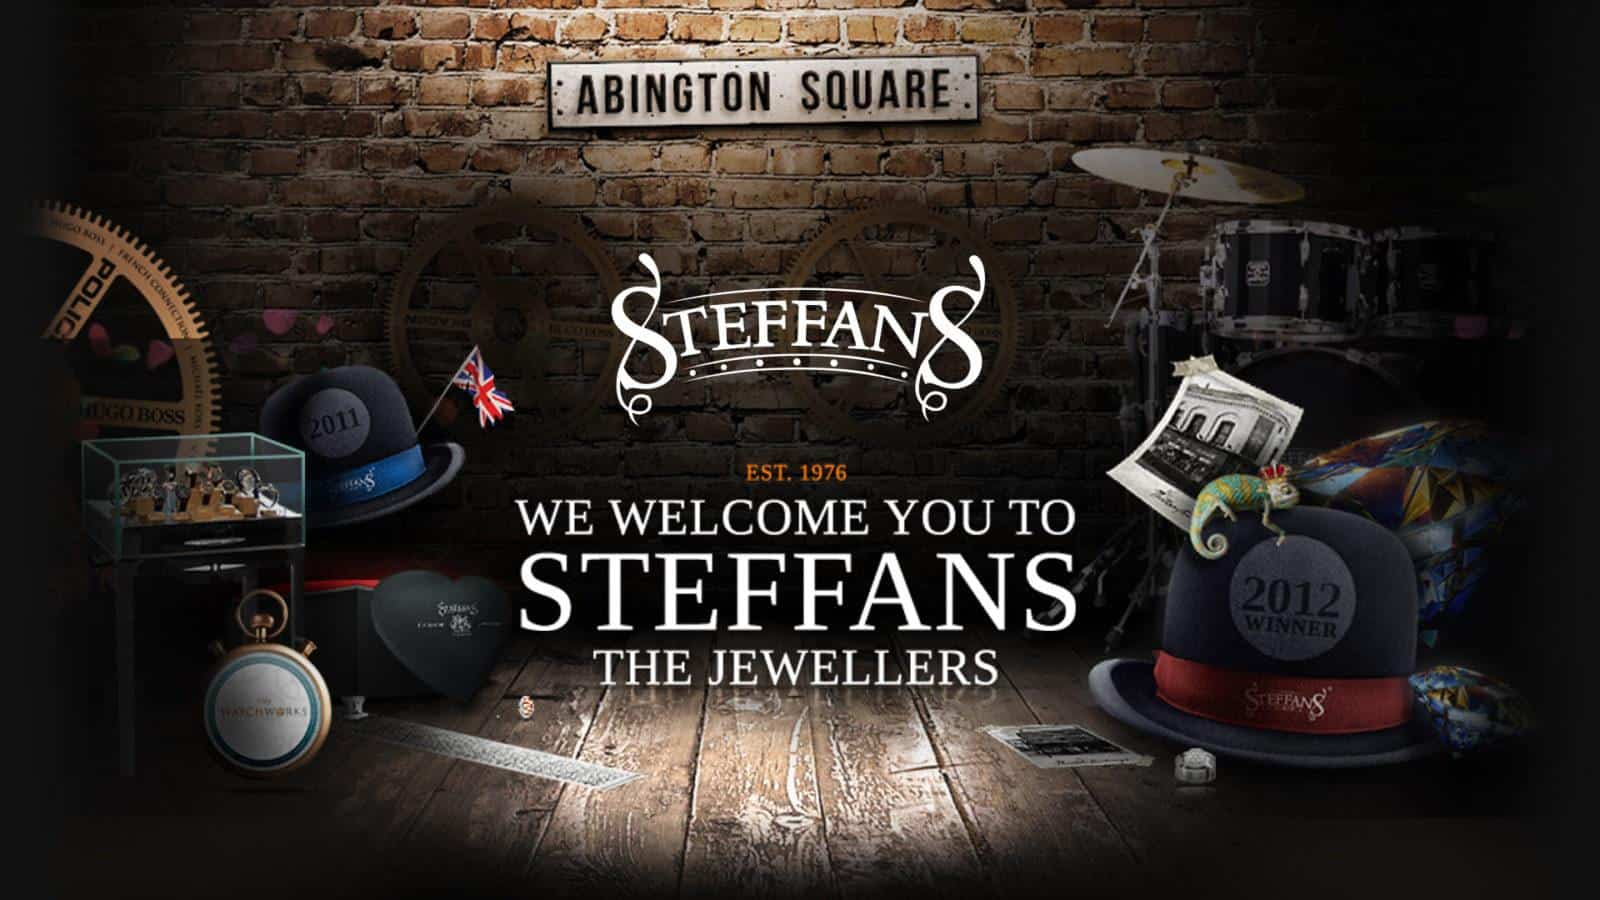 Steffans e-commerce website